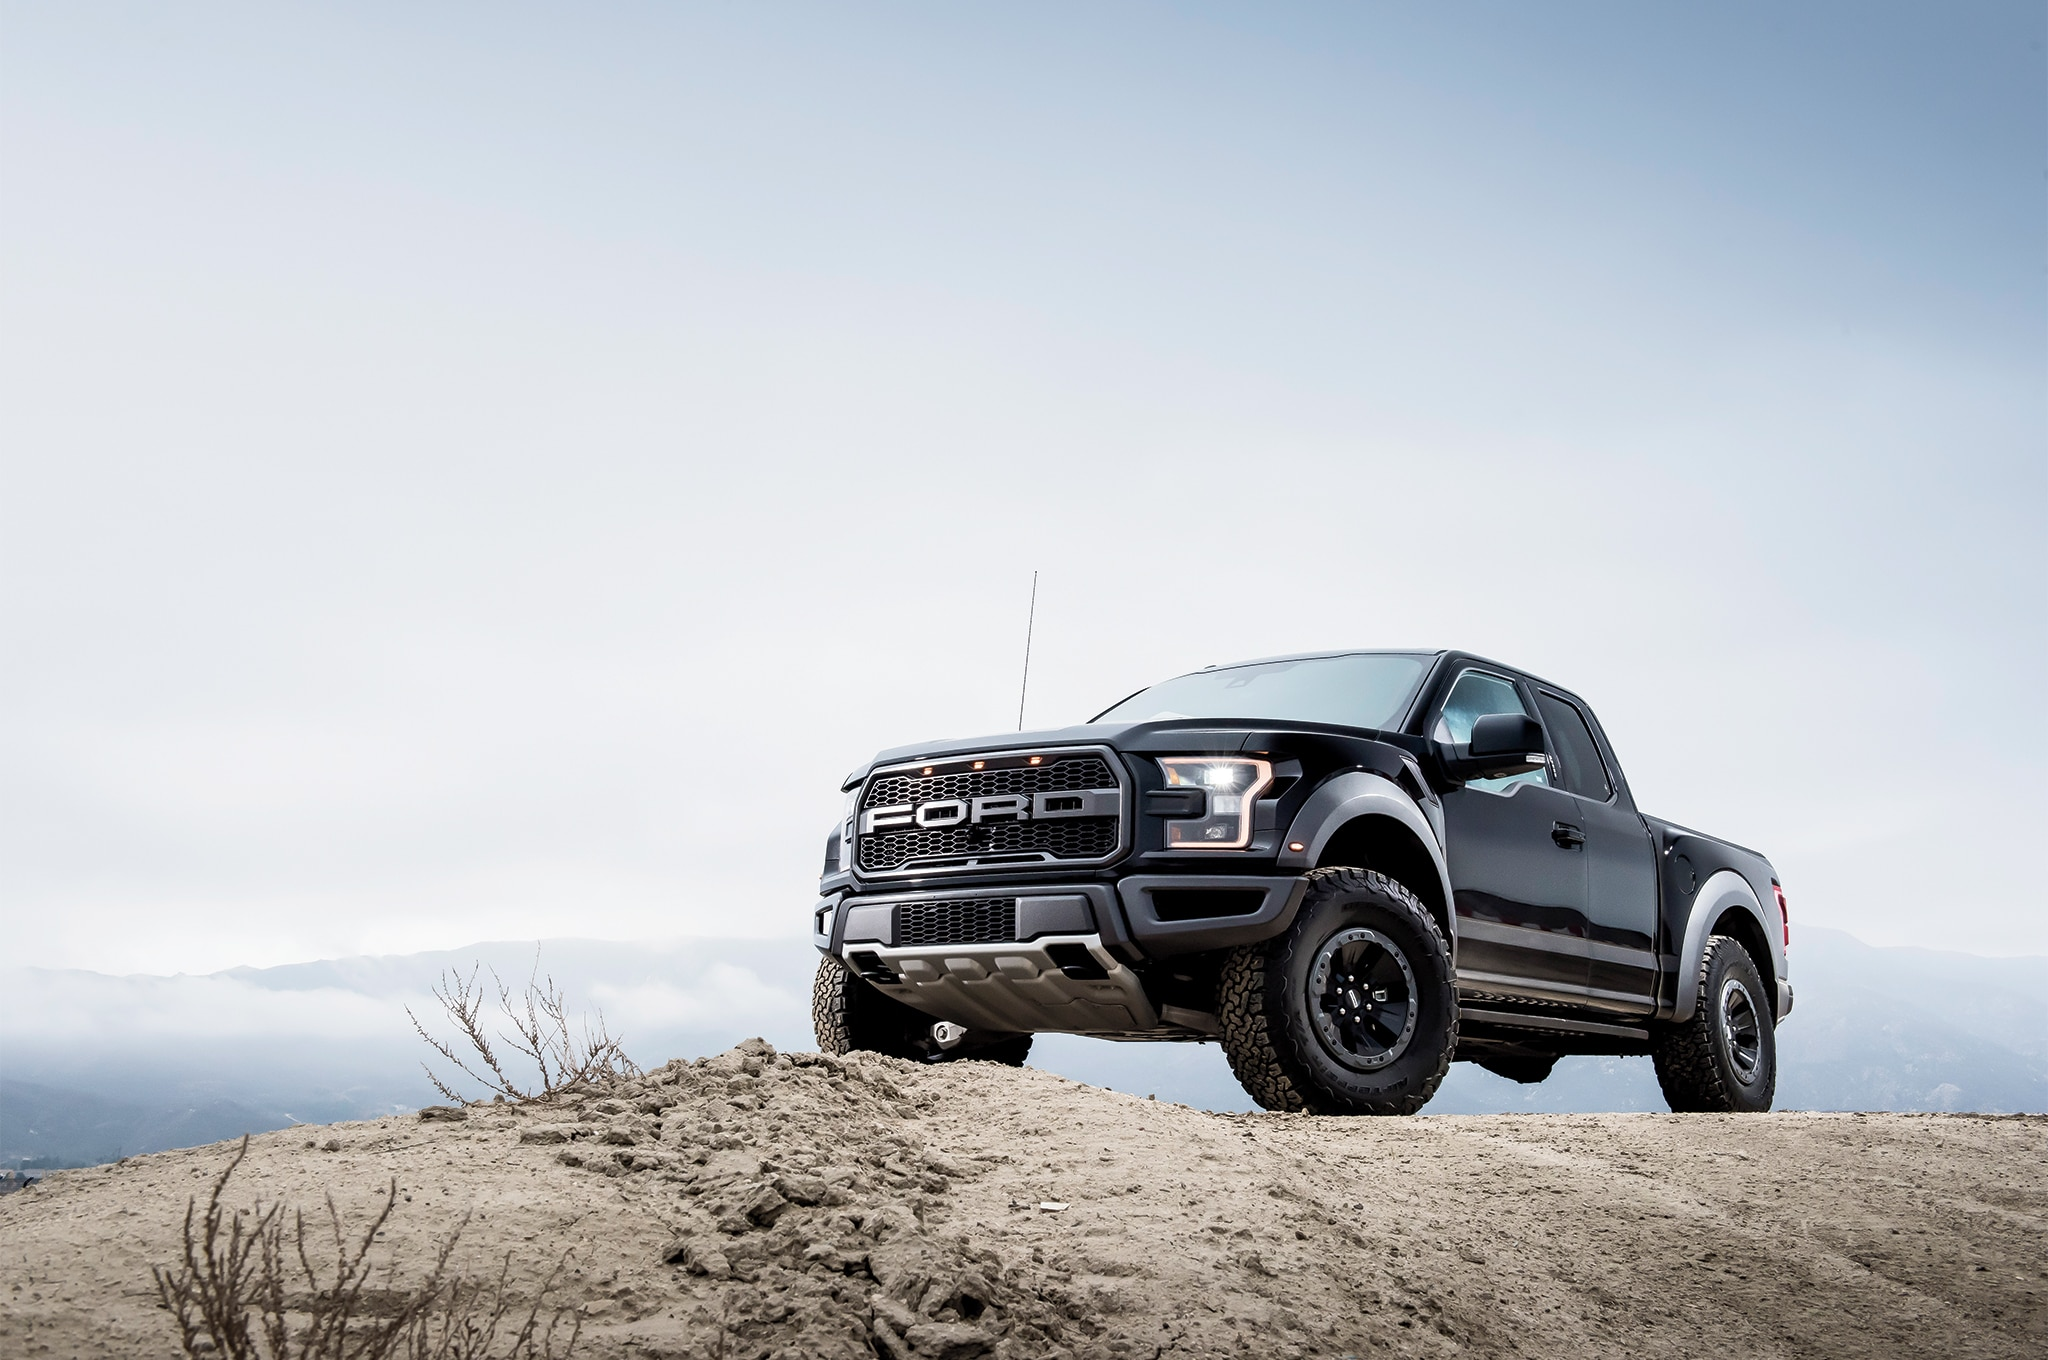 Getting To Know The 2017 Ford Raptor With The Man Who